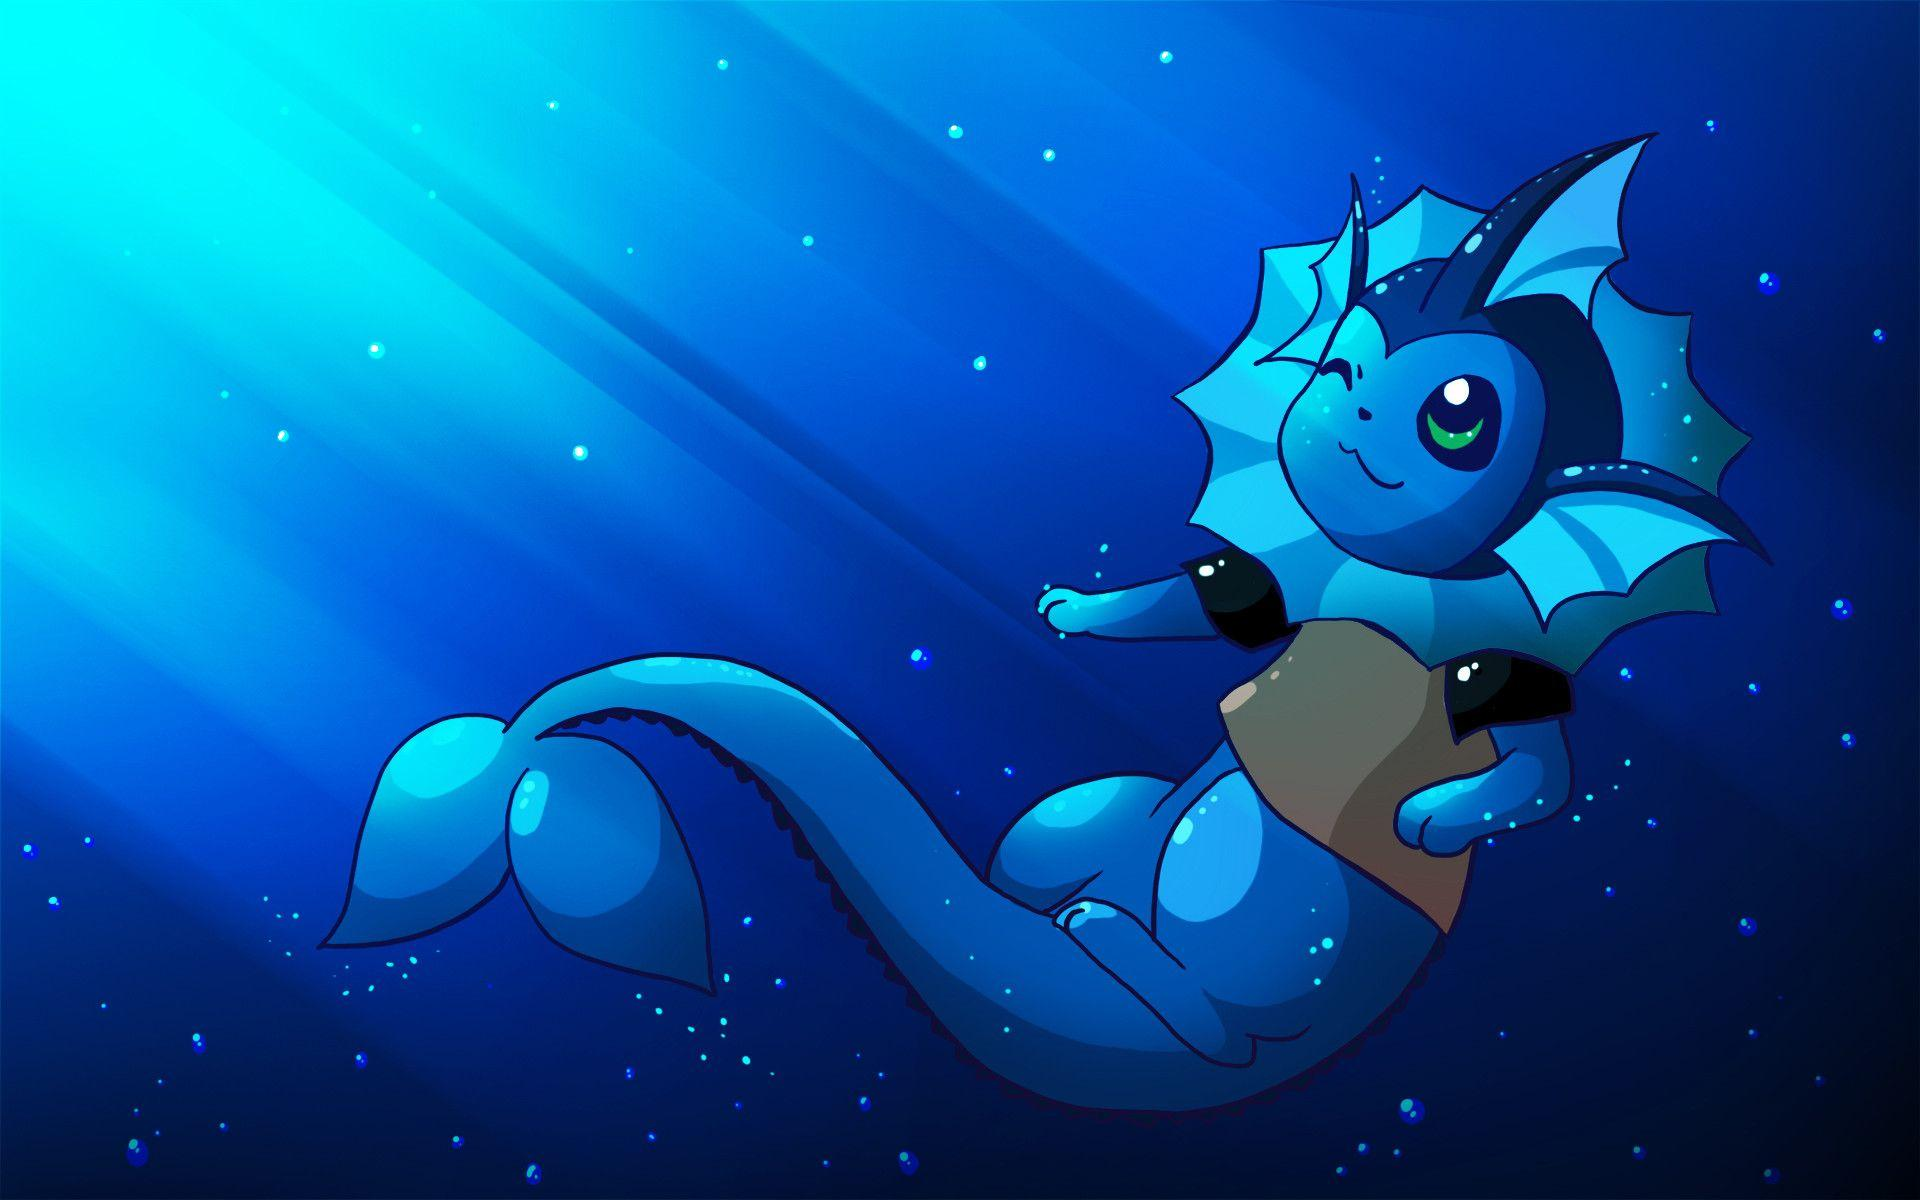 Vaporeon Wallpapers - Wallpaper Cave